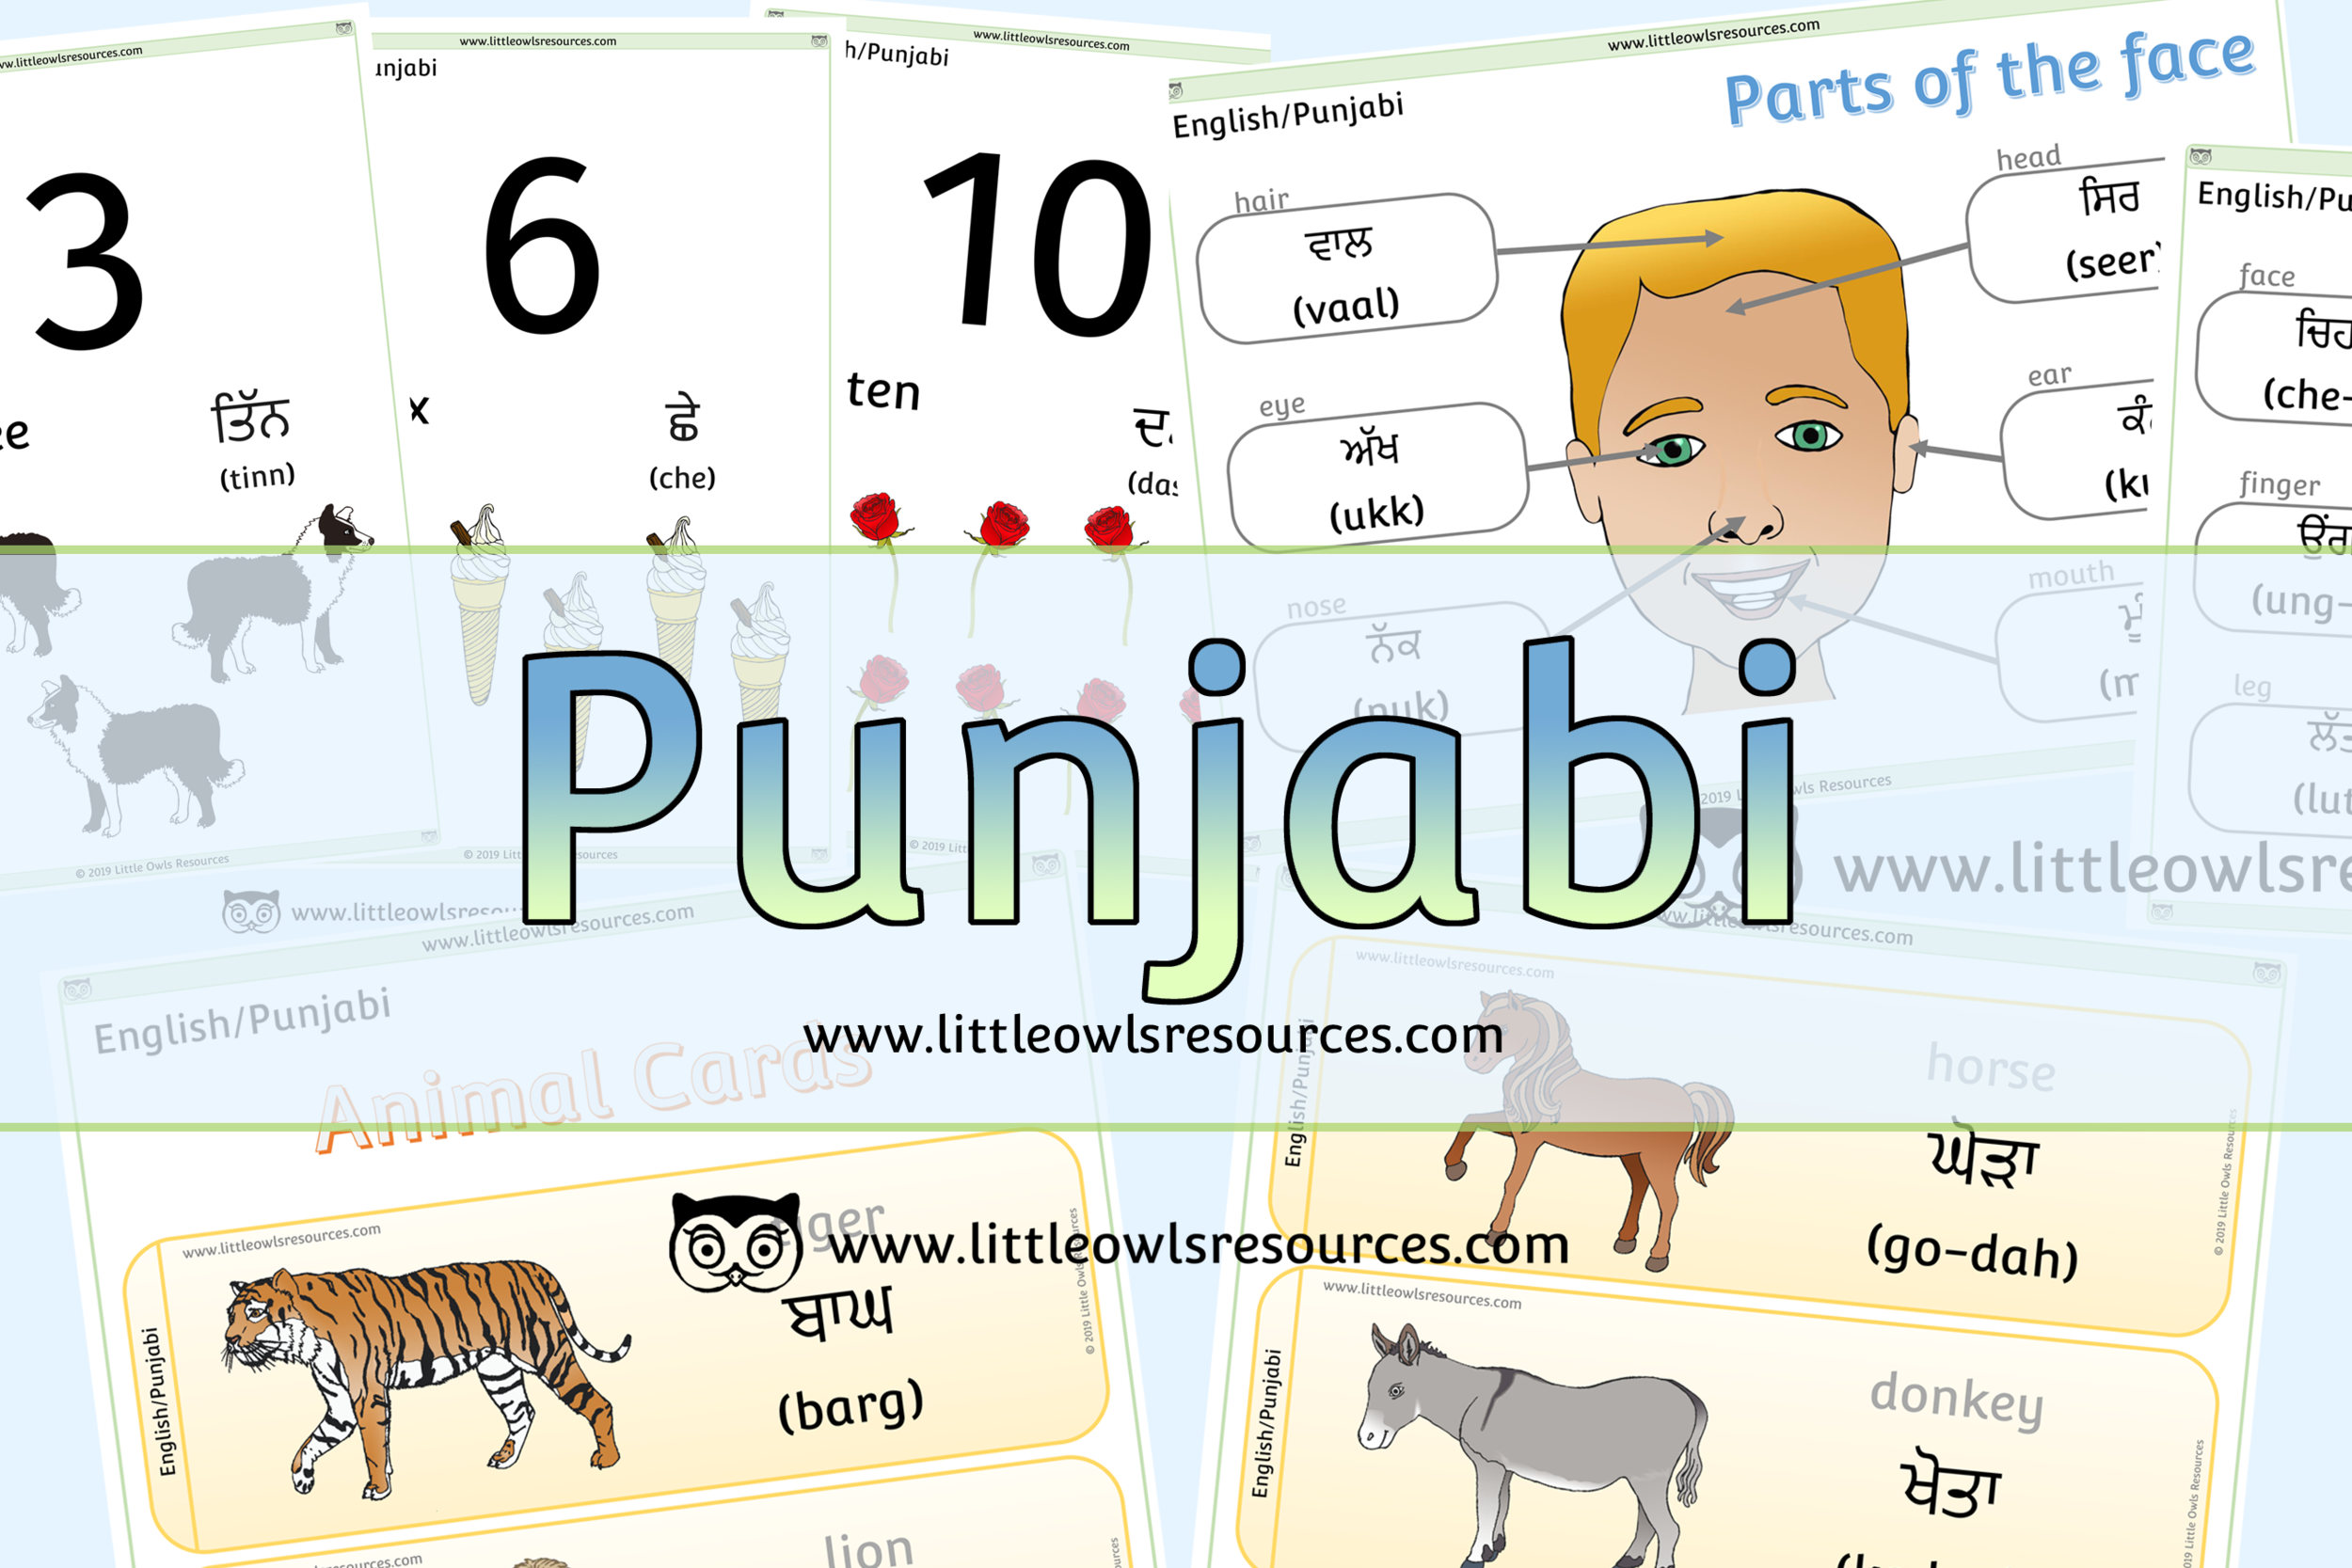 Punjabi/English Dual Language Resources